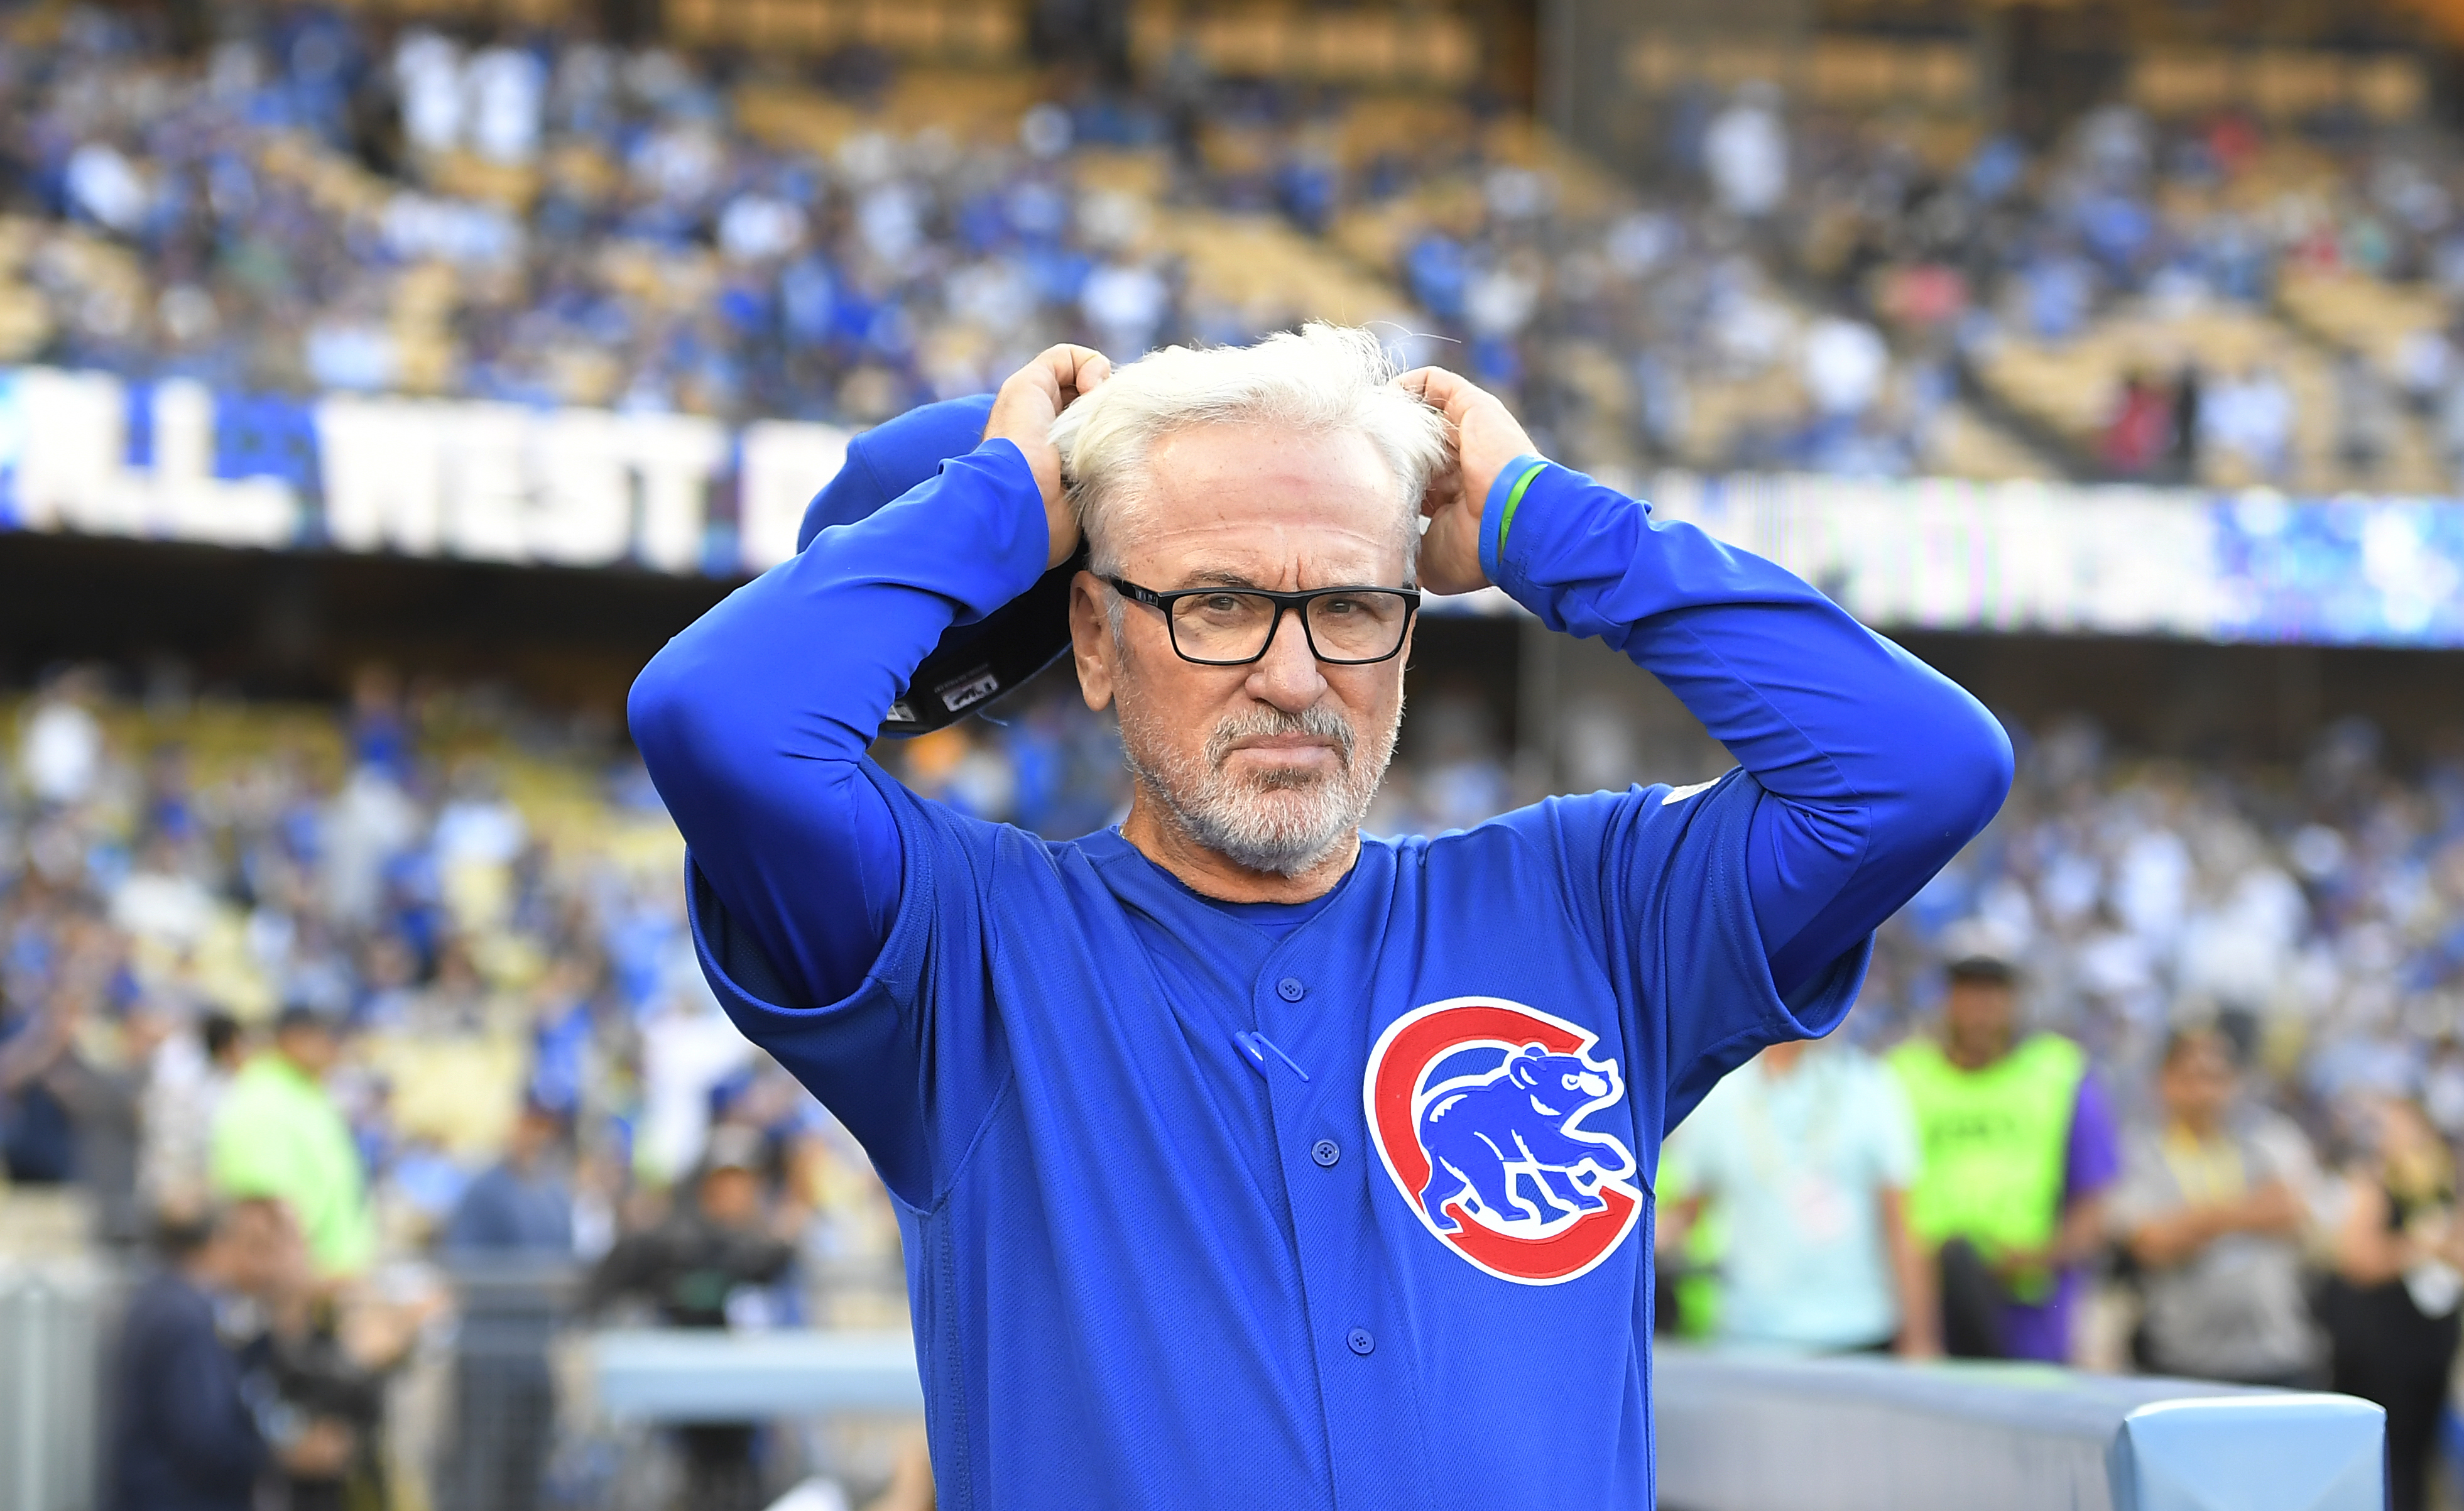 Chicago Cubs manager Joe Maddon looks around Dodgers Stadium before Game 3 of the National League baseball championship series against the Los Angeles Dodgers Tuesday, Oct. 18, 2016, in Los Angeles. (AP Photo/Mark J. Terrill)